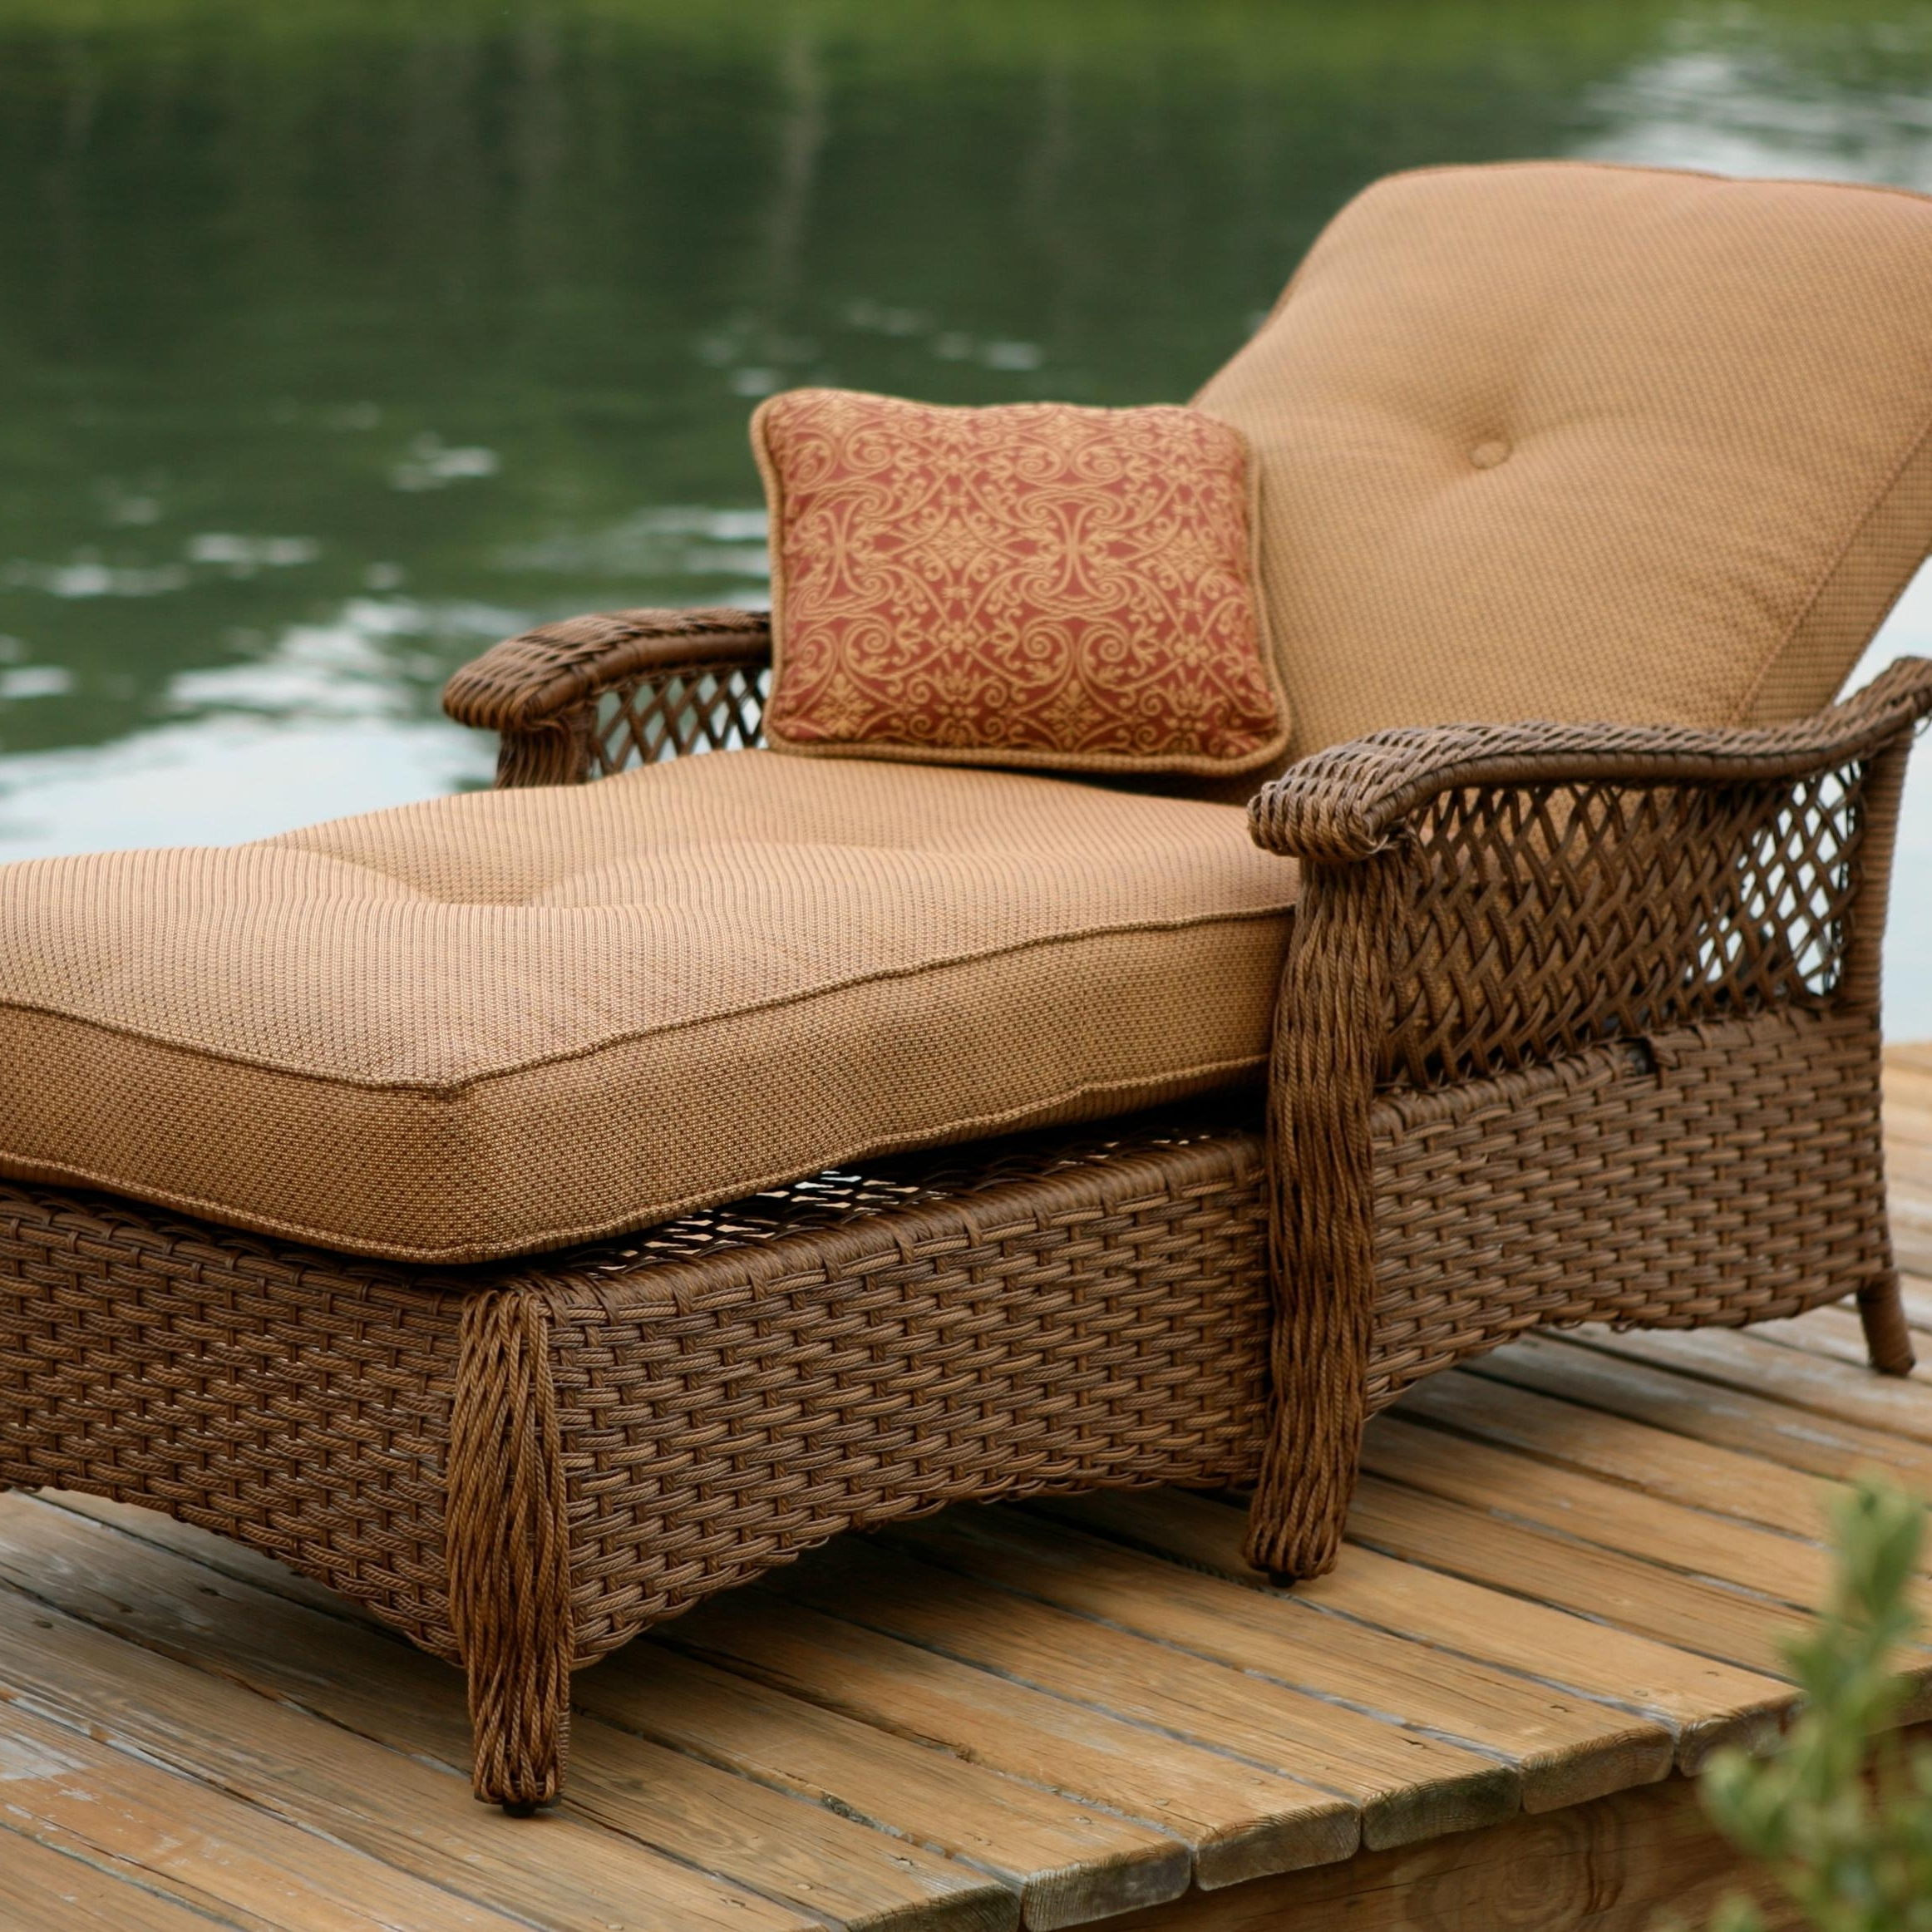 Well Liked Agio Veranda–Agio Outdoor Tan Woven Chaise Lounge Chair With Seat Throughout Deck Chaise Lounge Chairs (View 9 of 15)